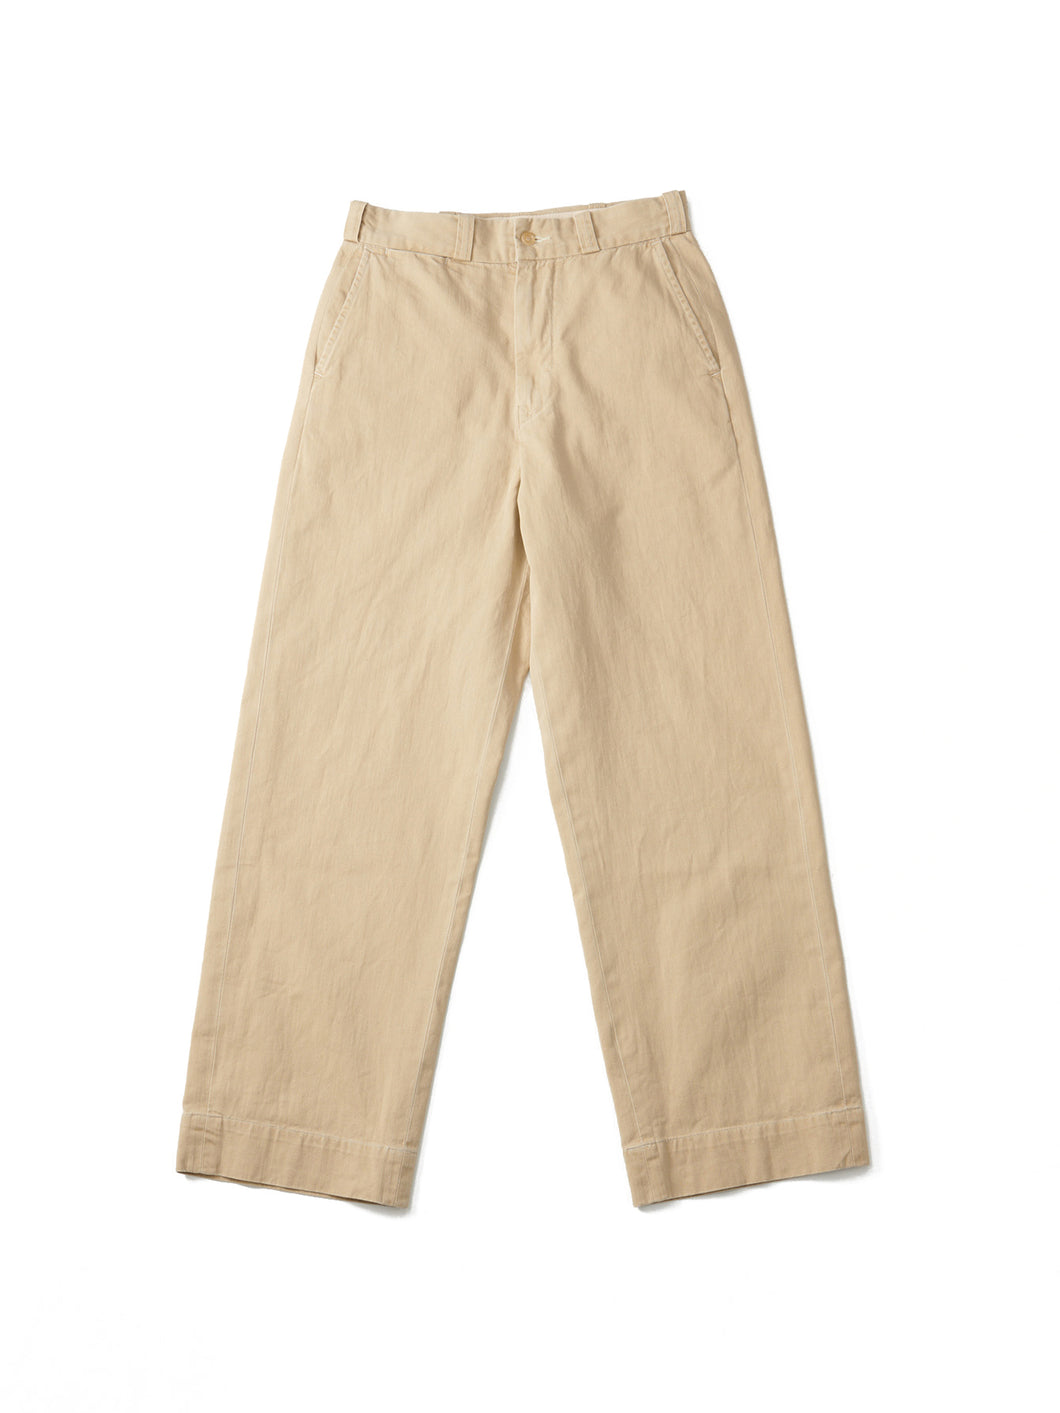 Okome Chino 908 Pants in Beige